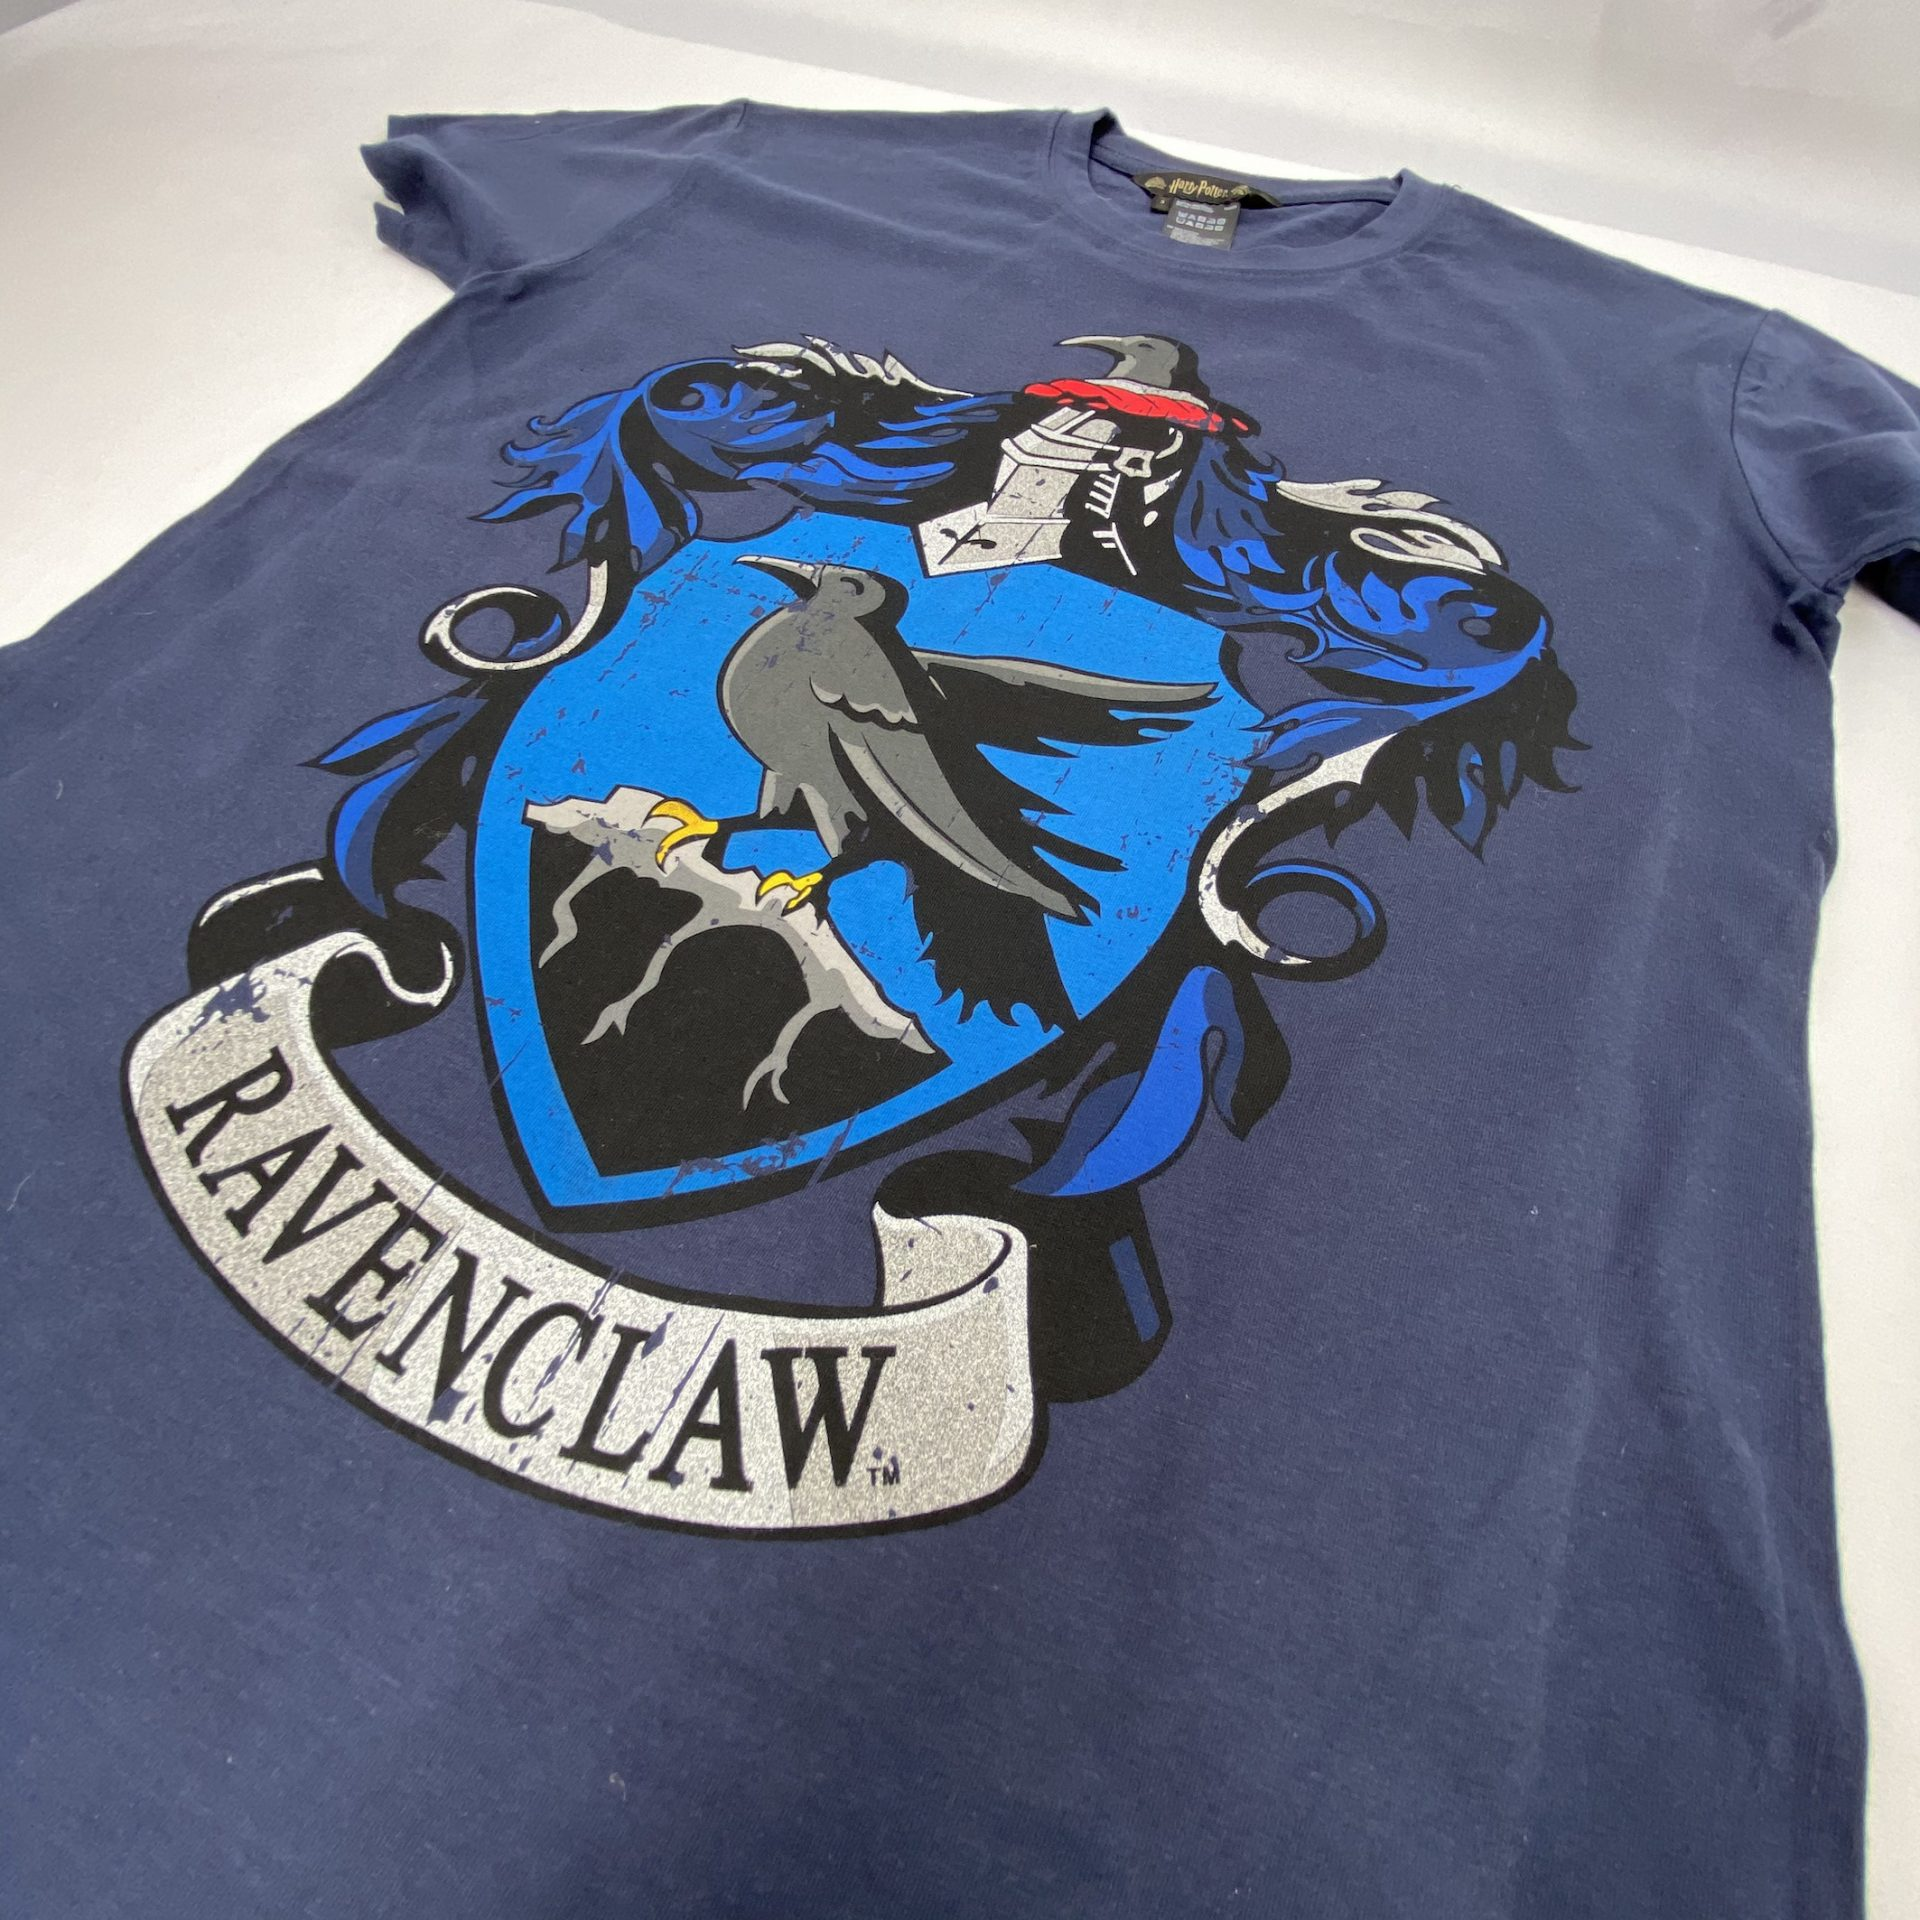 Two silver metallics are used to create this great effect on a Ravenclaw t-shirt